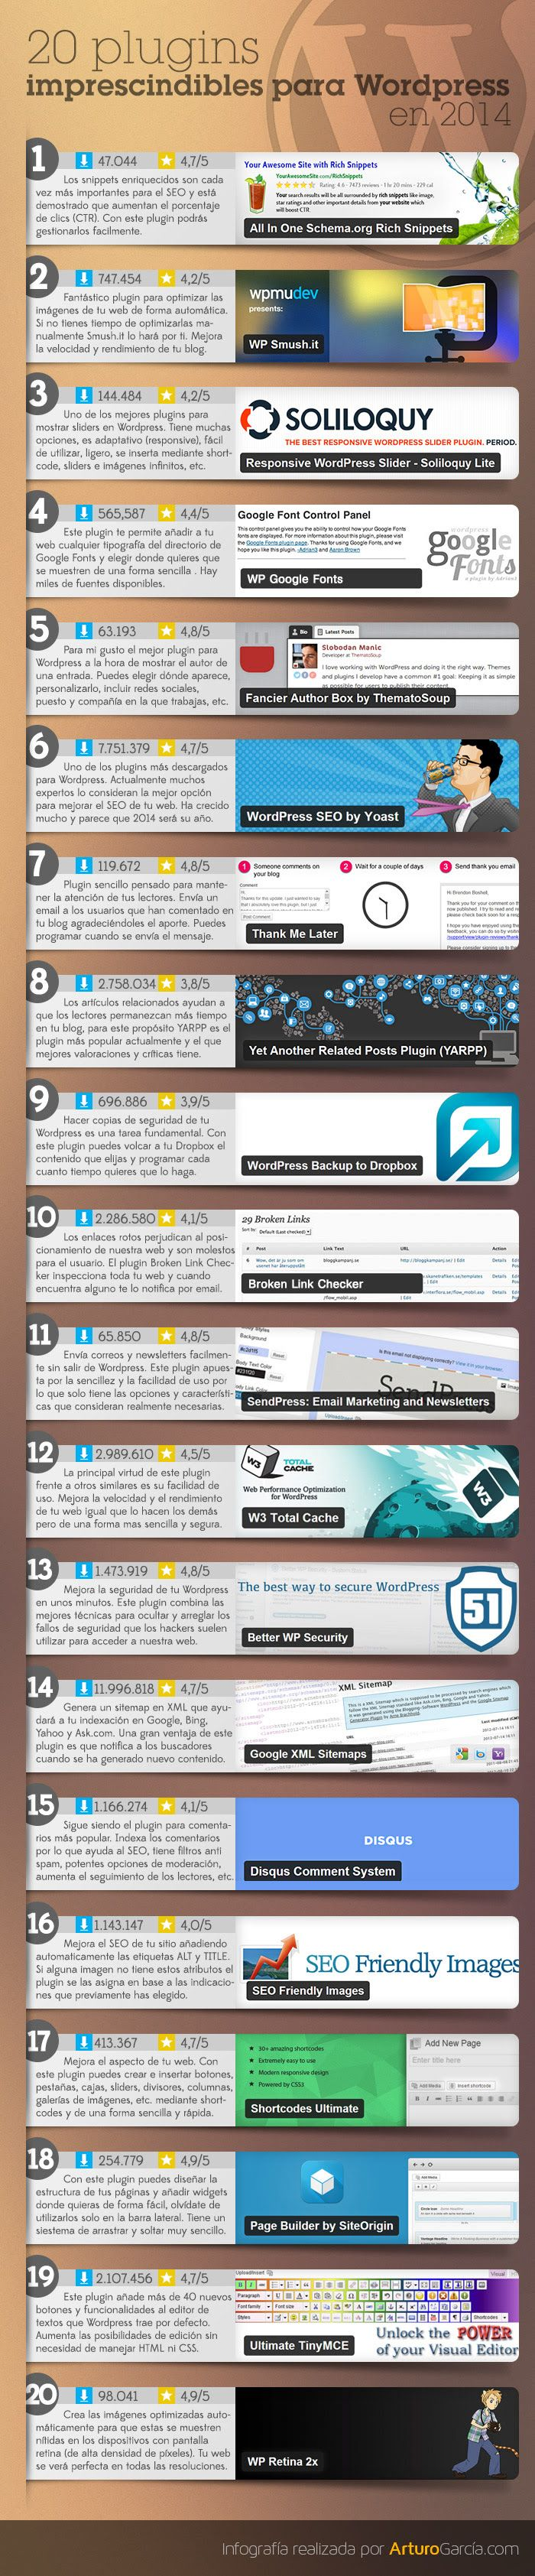 8 best infographics traducta switzerland images on pinterest